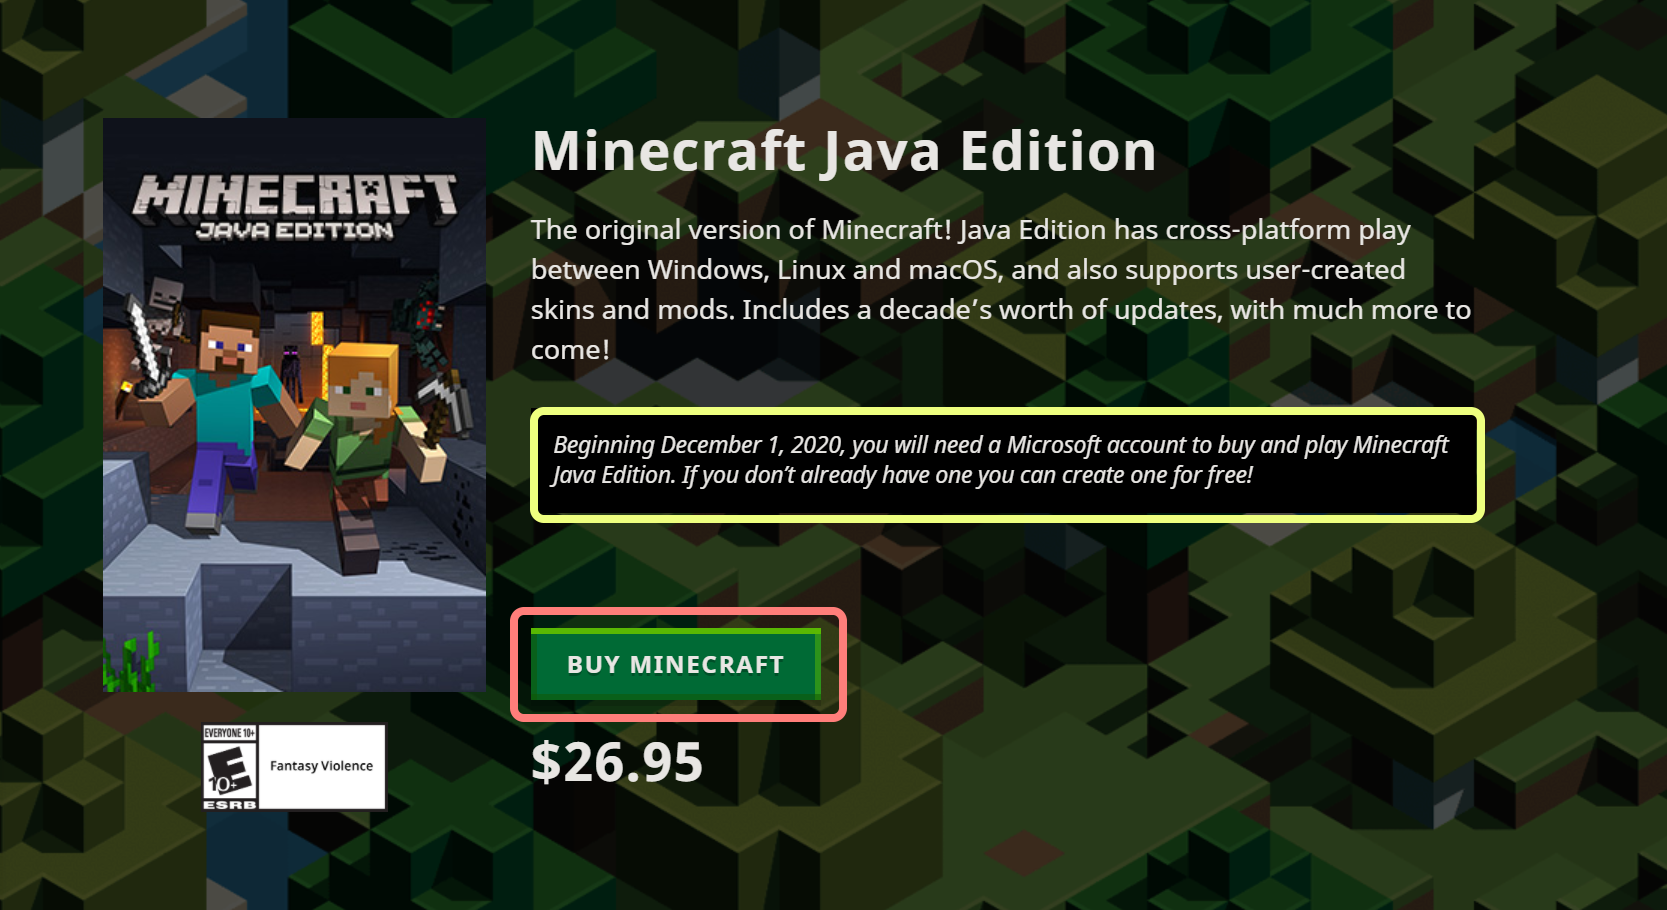 How To Purchase Minecraft Java Edition With A Microsoft Account Home